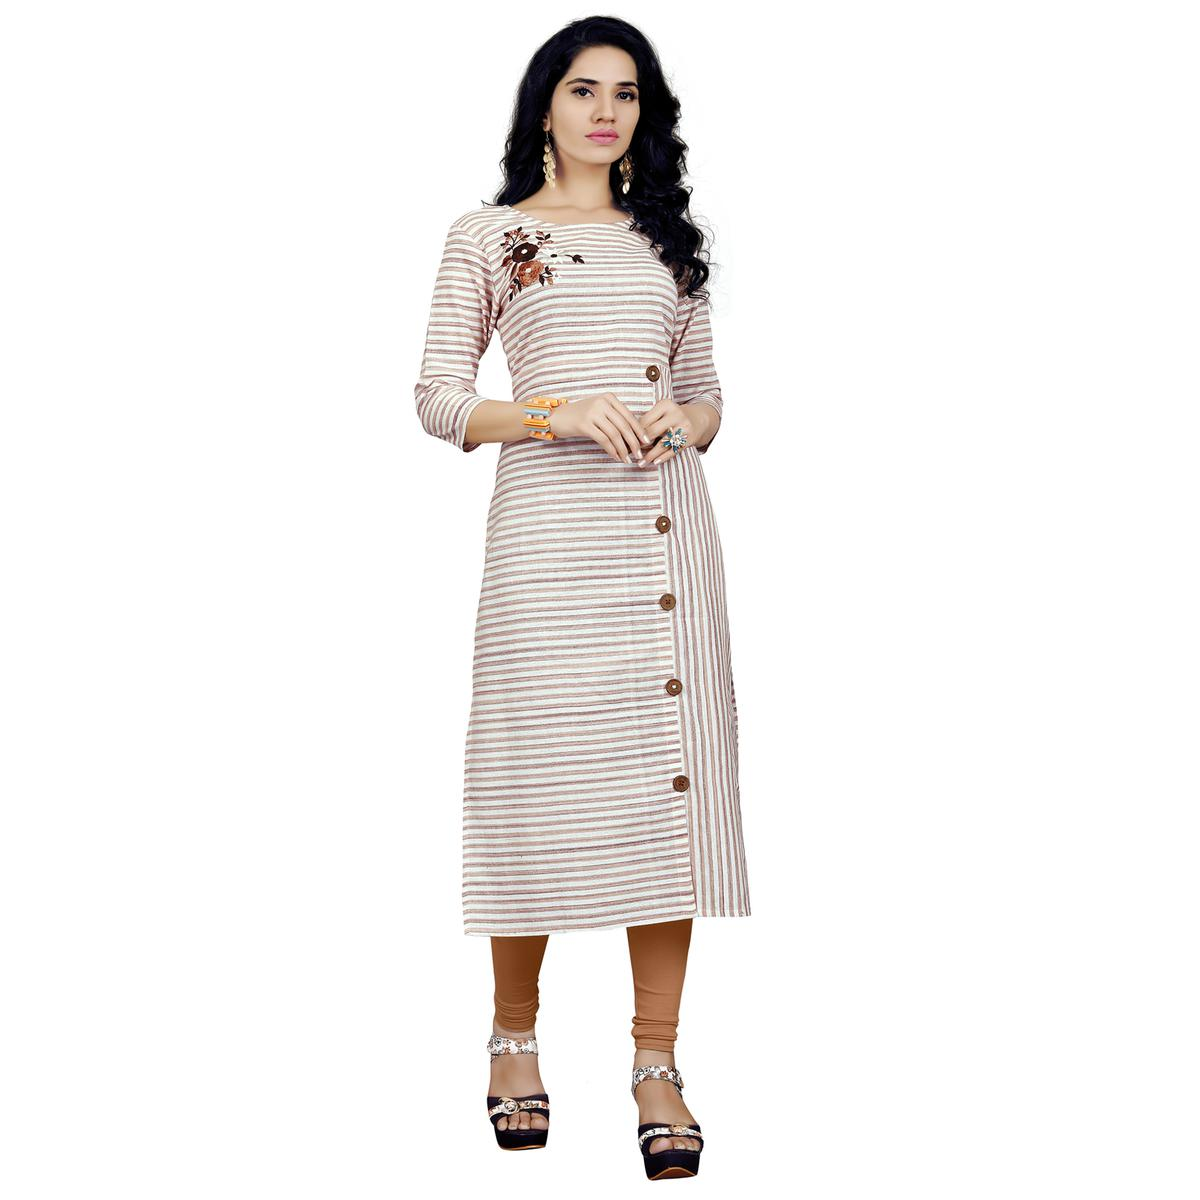 Fantastic Off White Colored Casual Printed Cotton Kurti